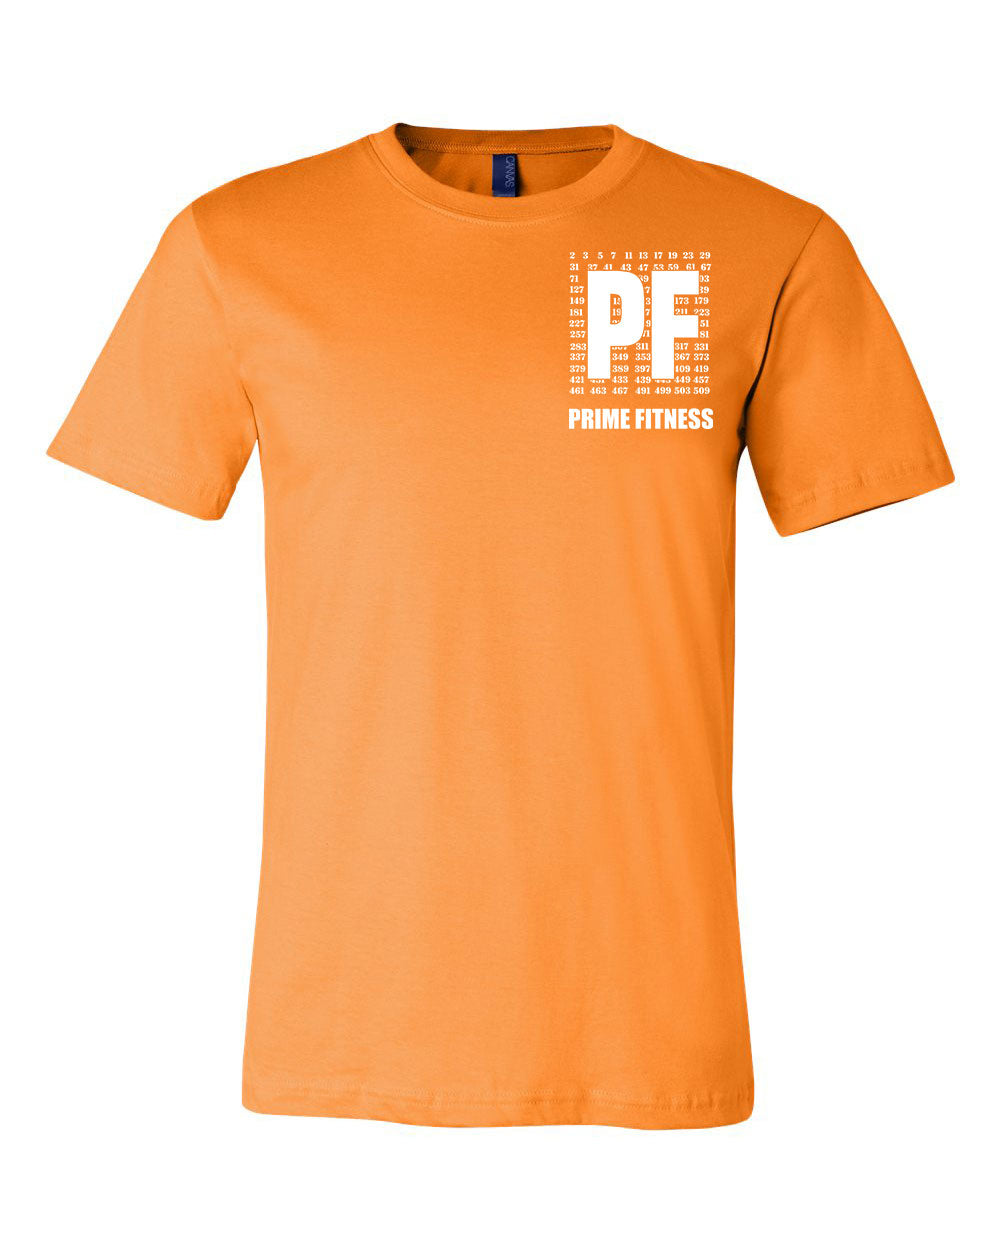 Prime Fitness Colored Logo Tee - Paws & Prints Studio